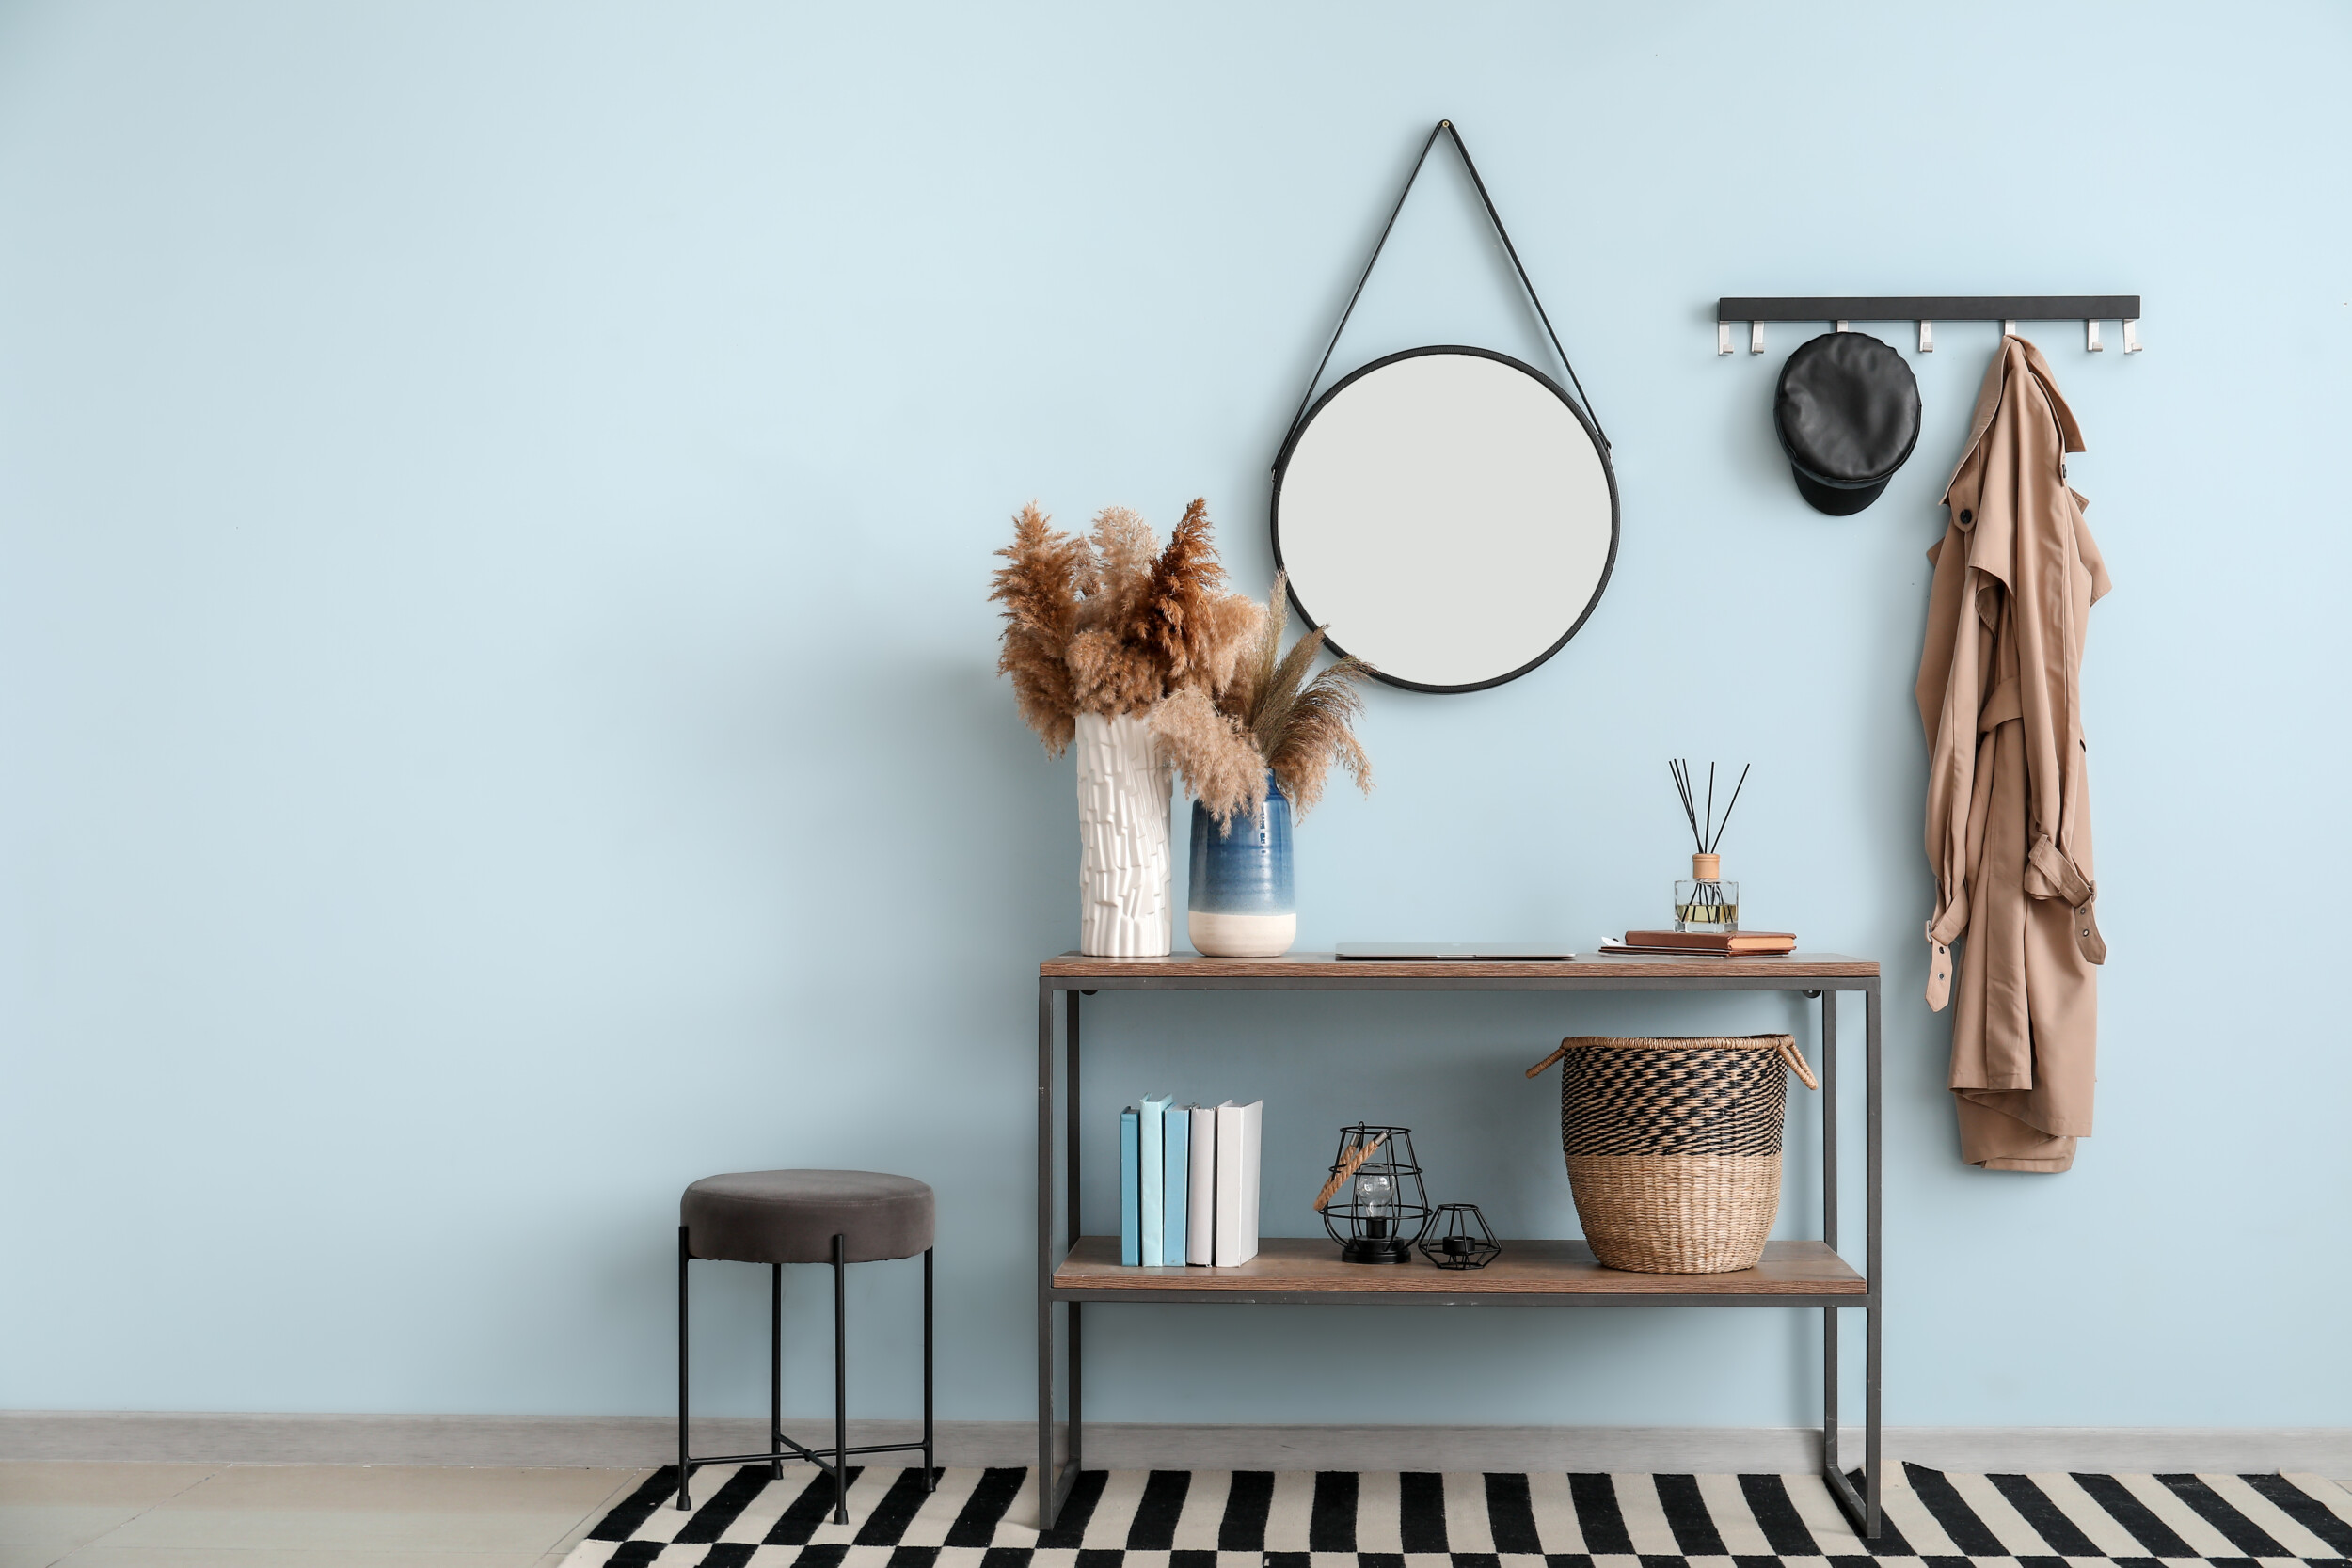 15 Interior Design Tips For The Best First Impression - Décor Aid